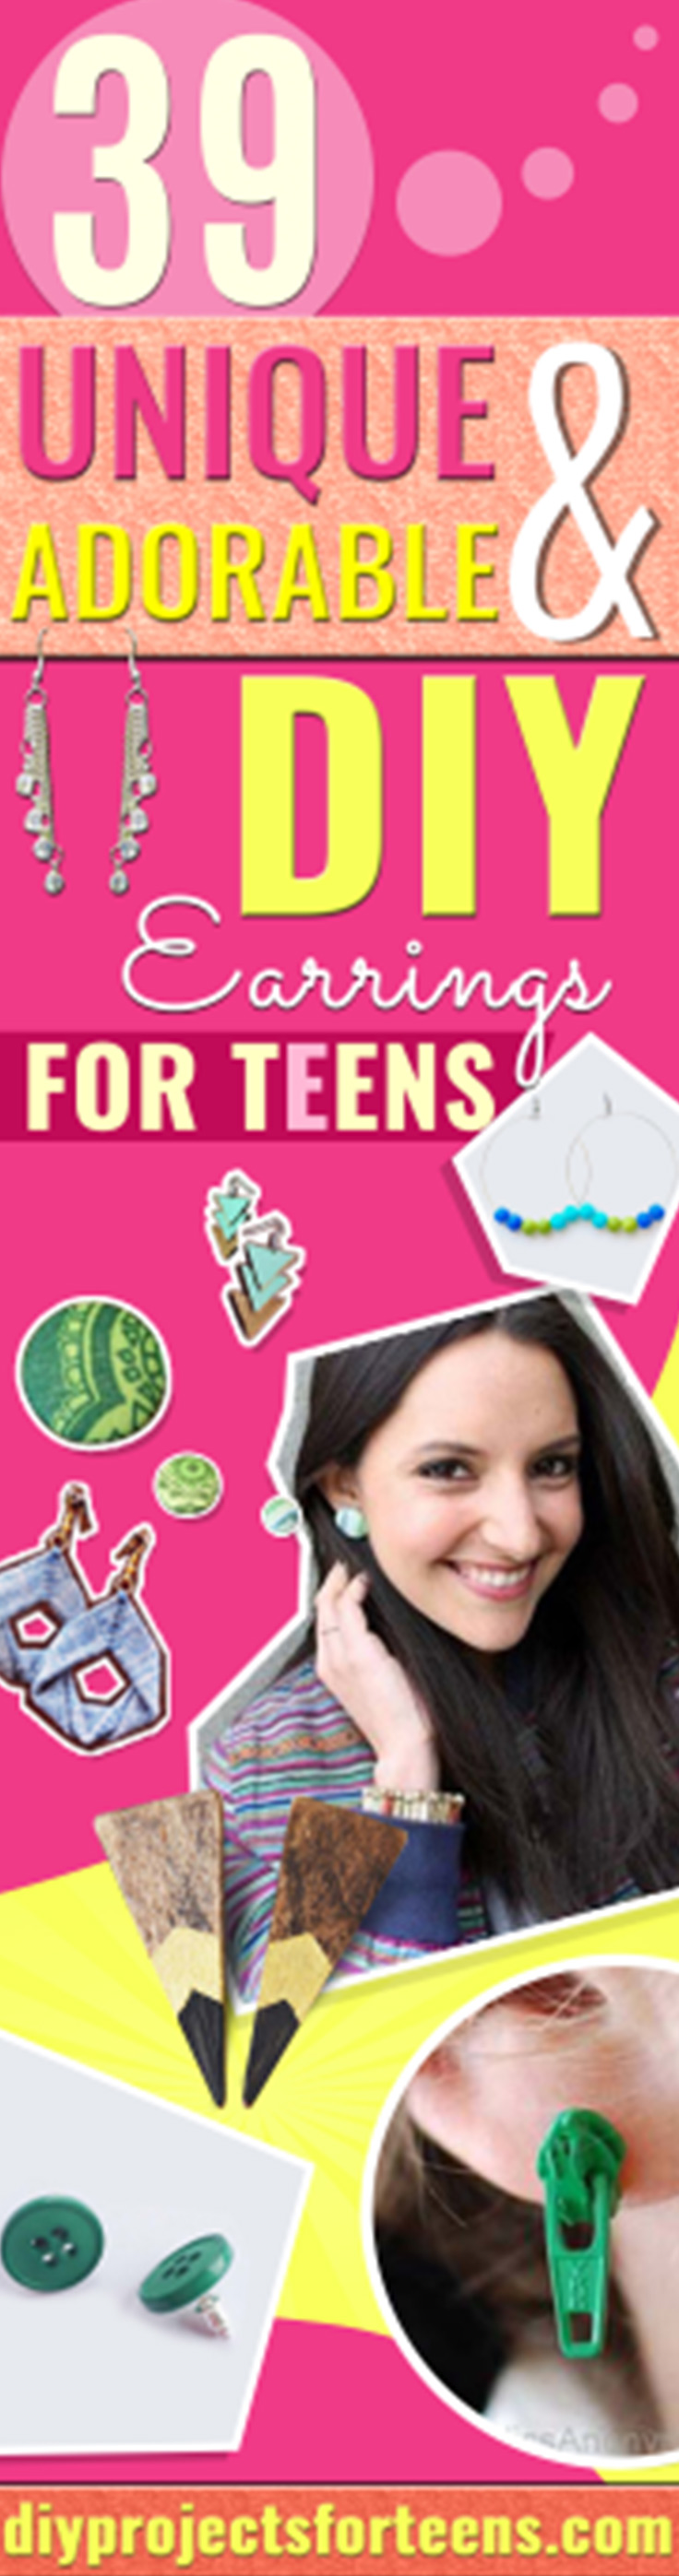 DIY Earrings and Homemade Jewelry Projects -  Easy Studs, Ideas with Beads, Dangle Earring Tutorials, Wire, Feather, Simple Boho, Handmade Earring Cuff, Hoops and Cute Ideas for Teens and Adults http://diyprojectsforteens.com/diy-earrings